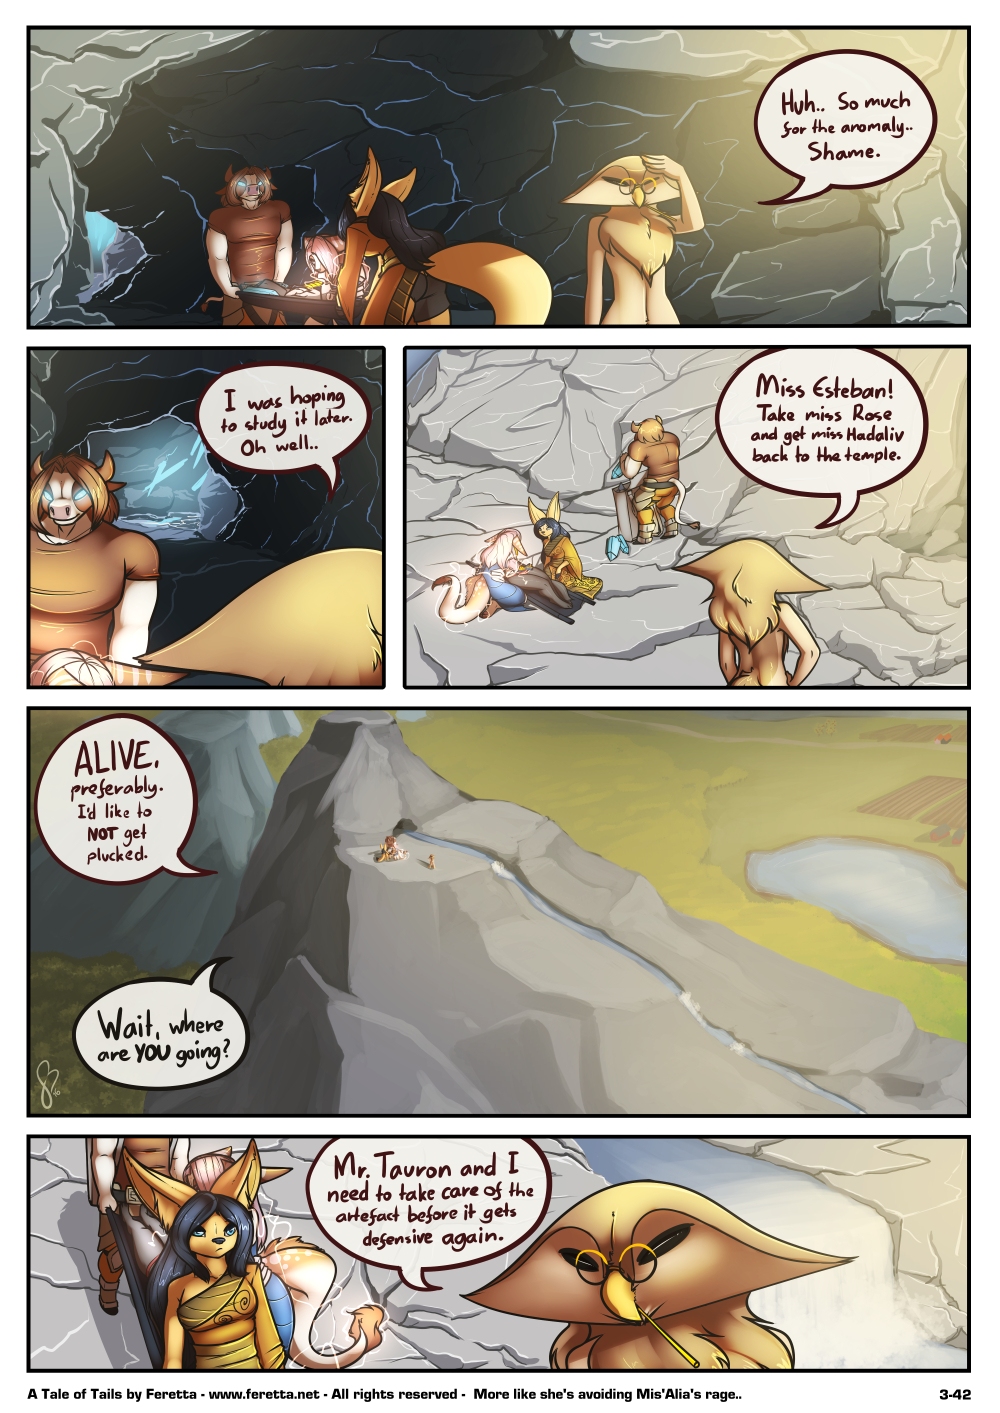 A Tale of Tails, 3-42